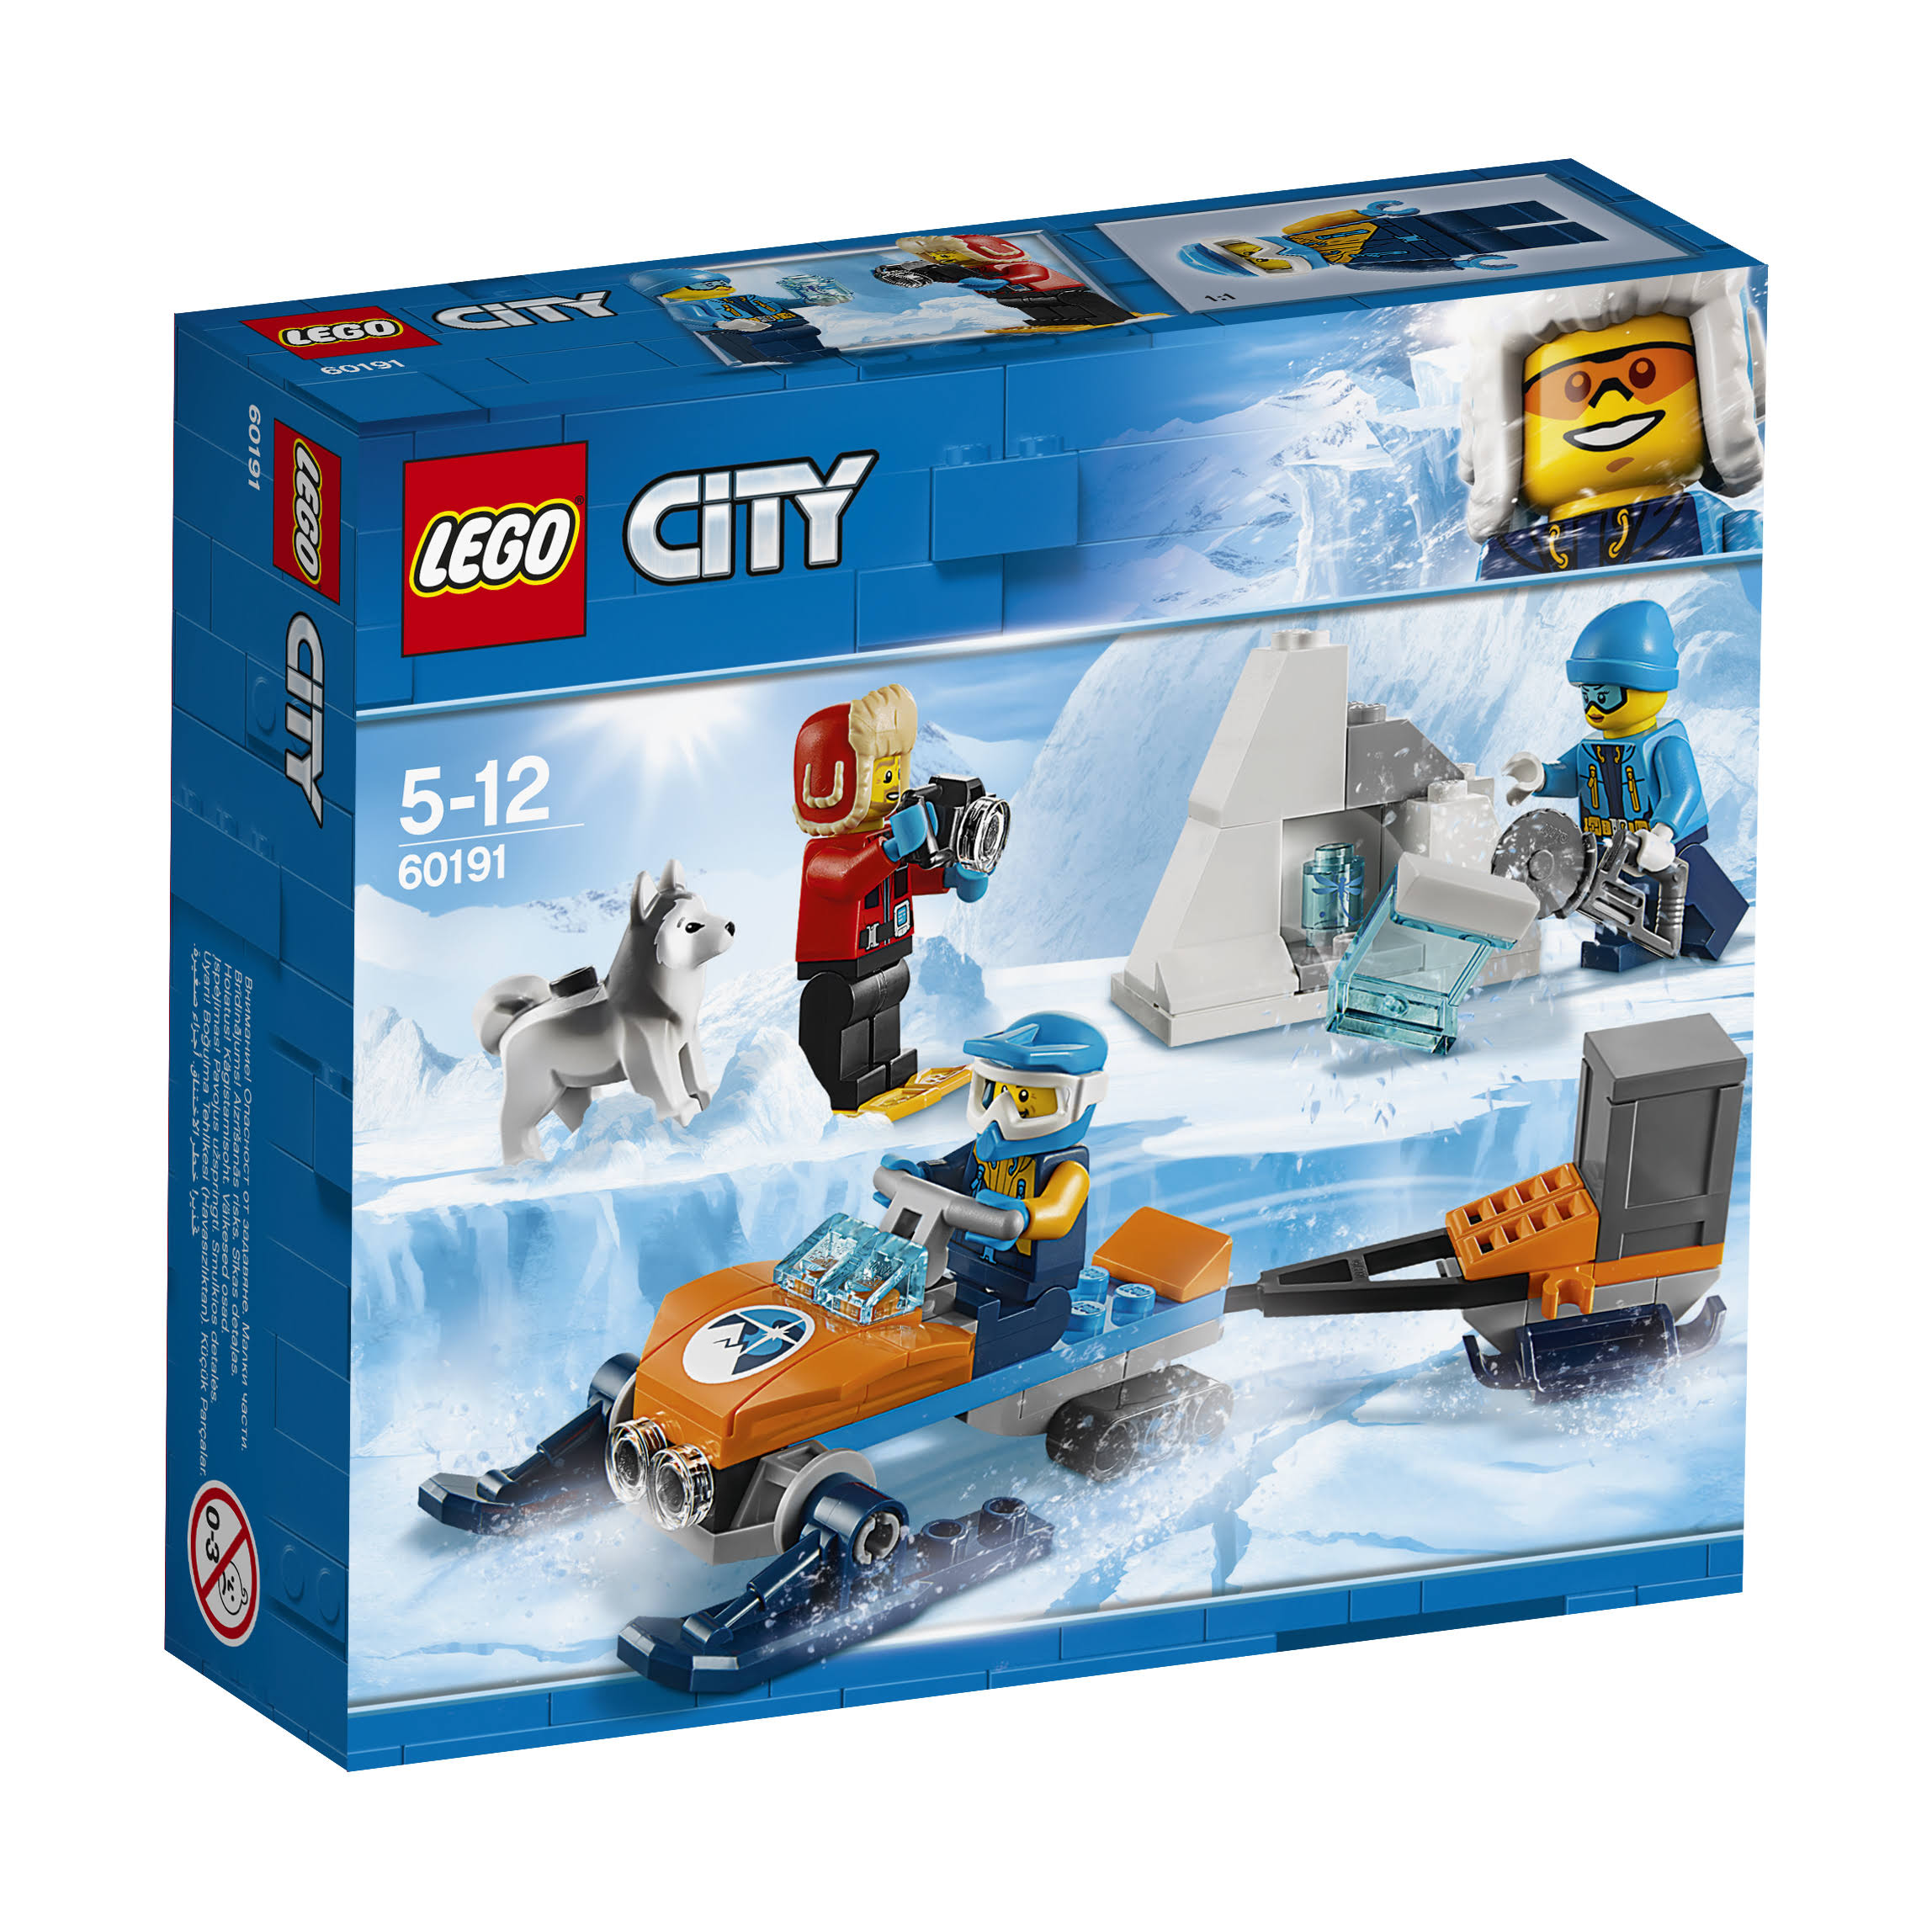 LEGO City 60191 Arctic Exploration Team Set